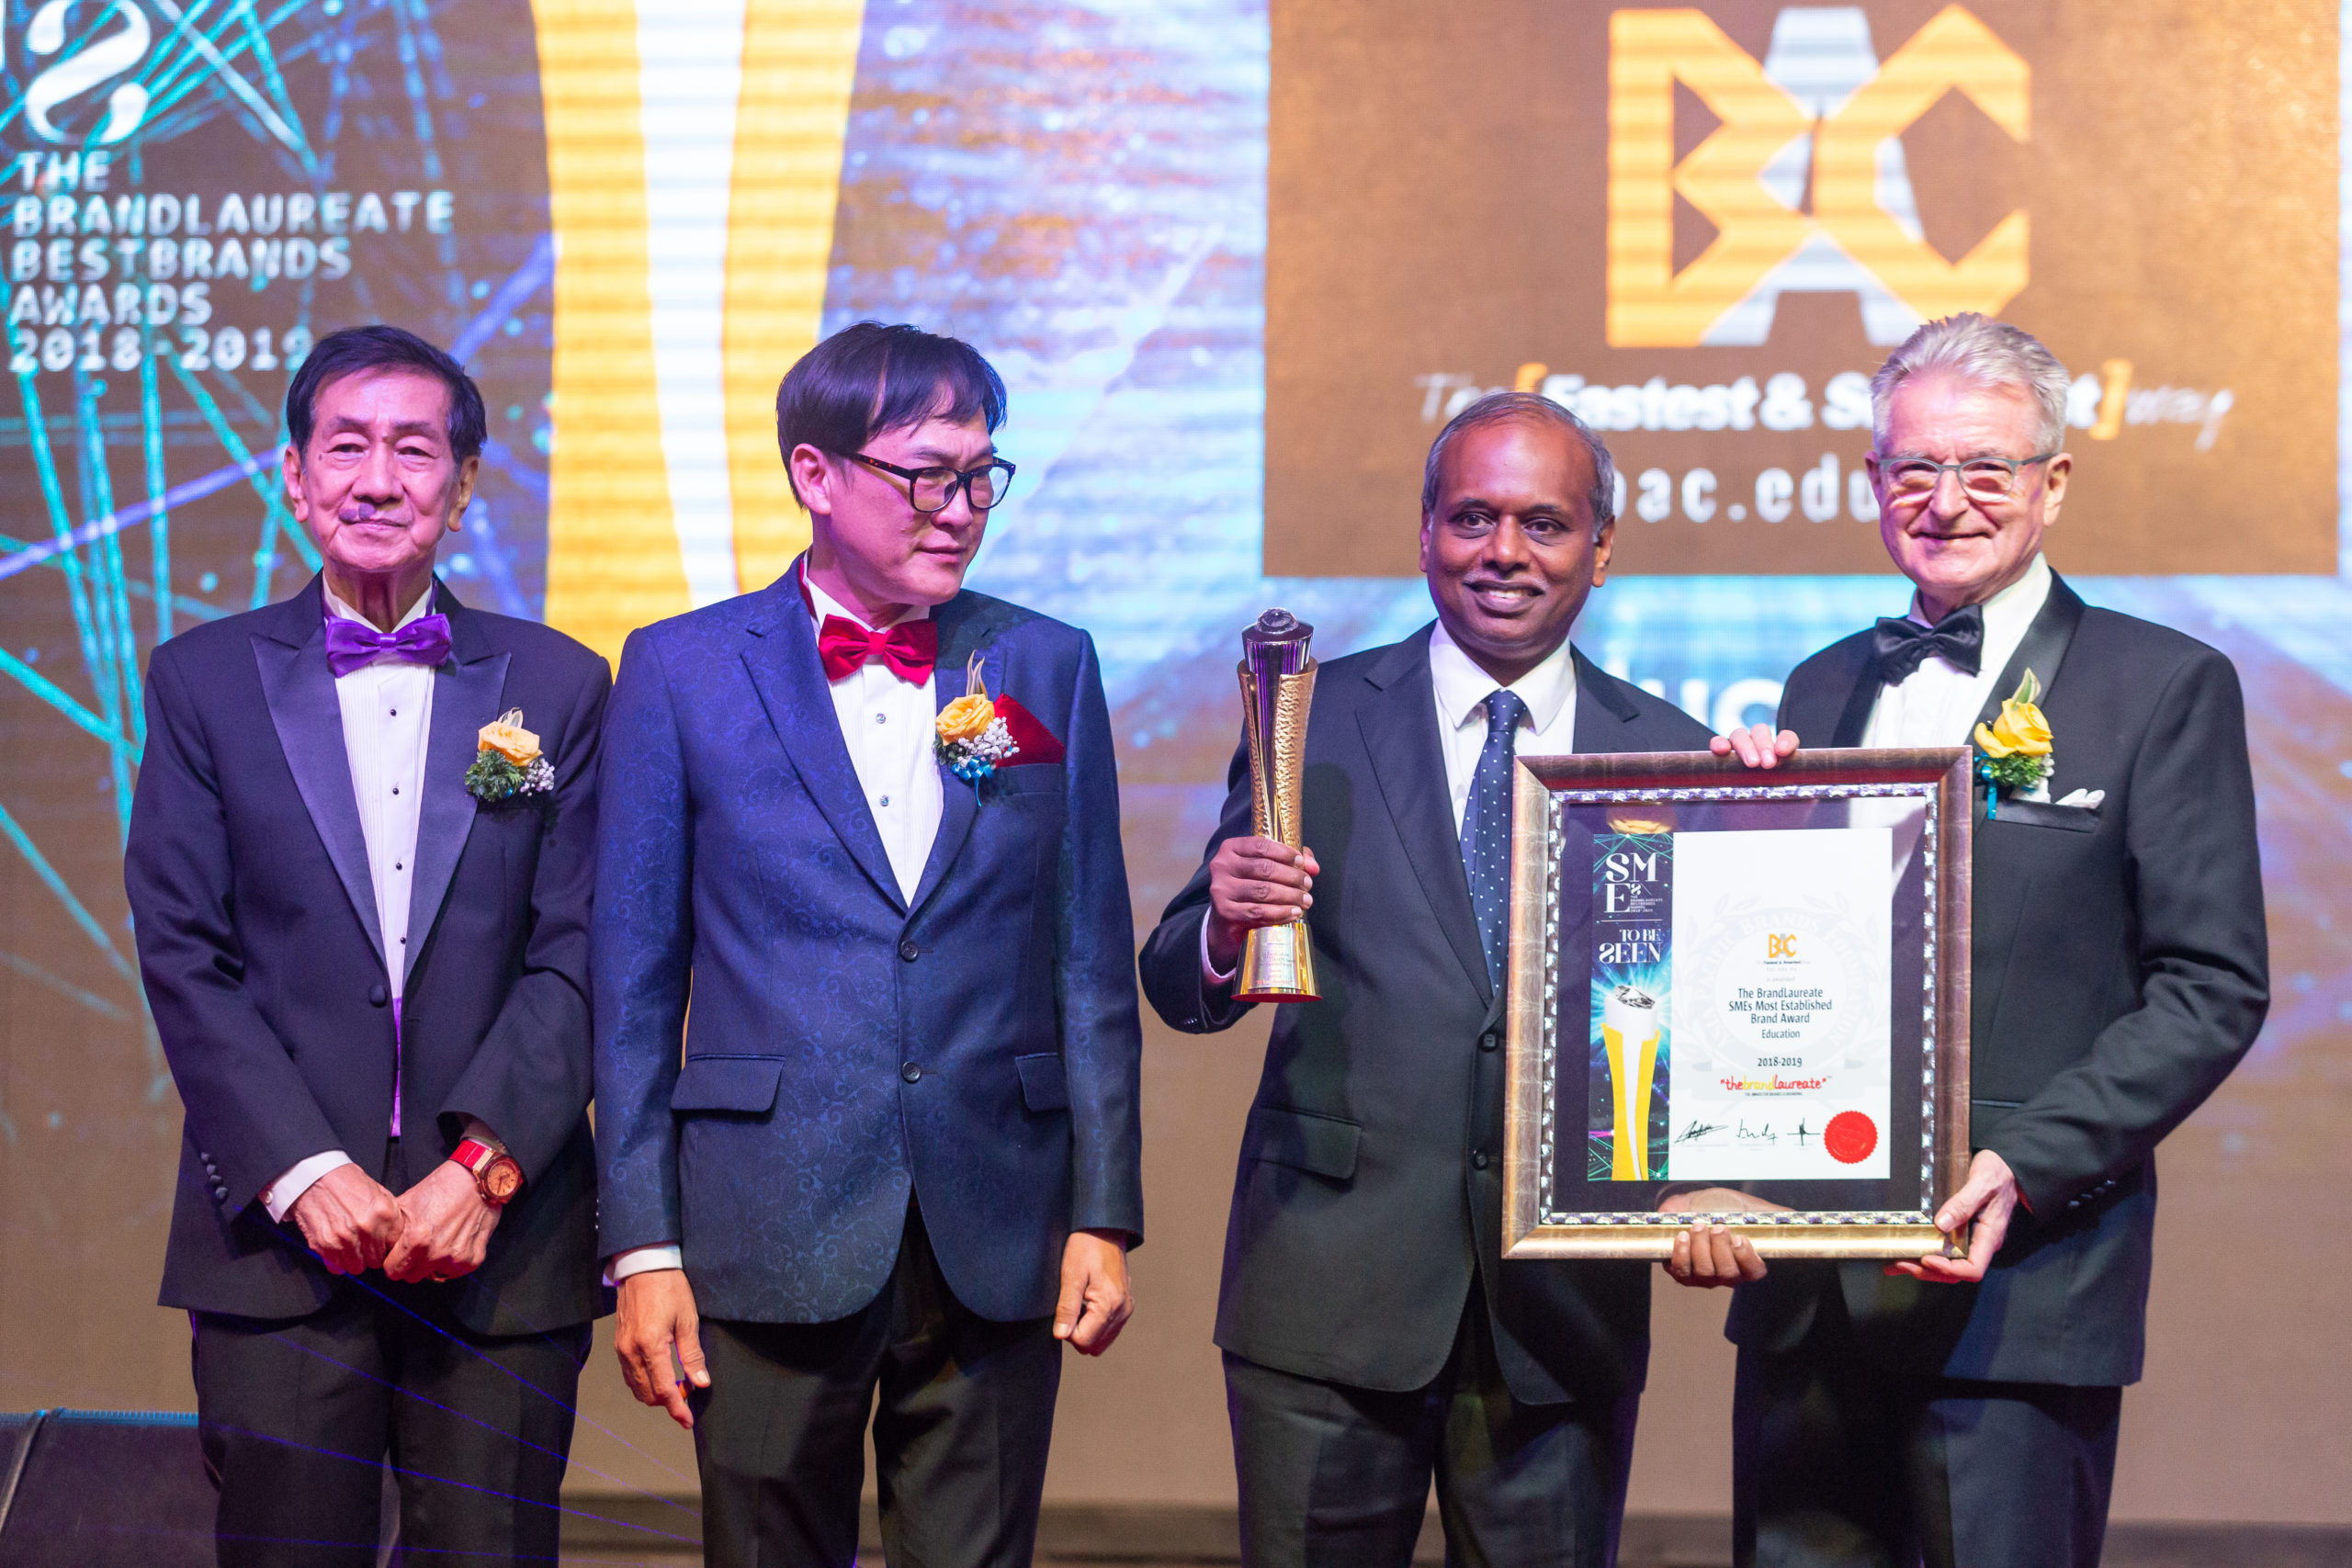 BAC bags The Brand Laureate Best Brand in Education Award 2018-2019